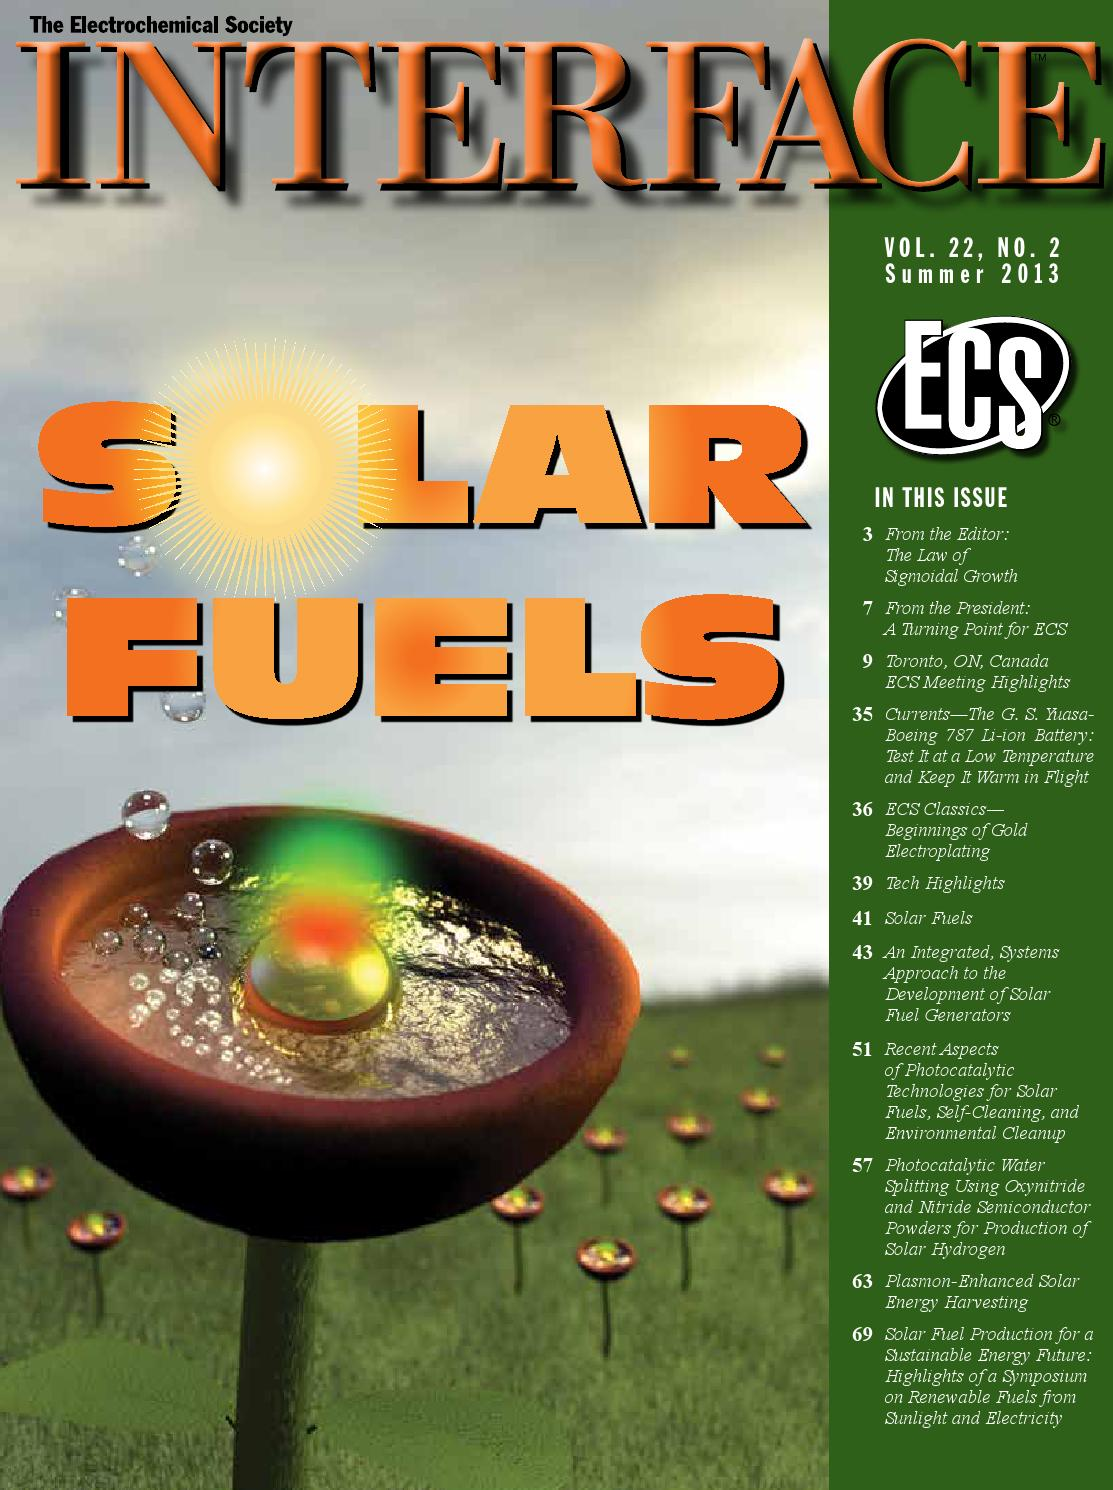 ff7cc4764d Interface Vol. 22, No. 2, Summer 2013 by The Electrochemical Society ...